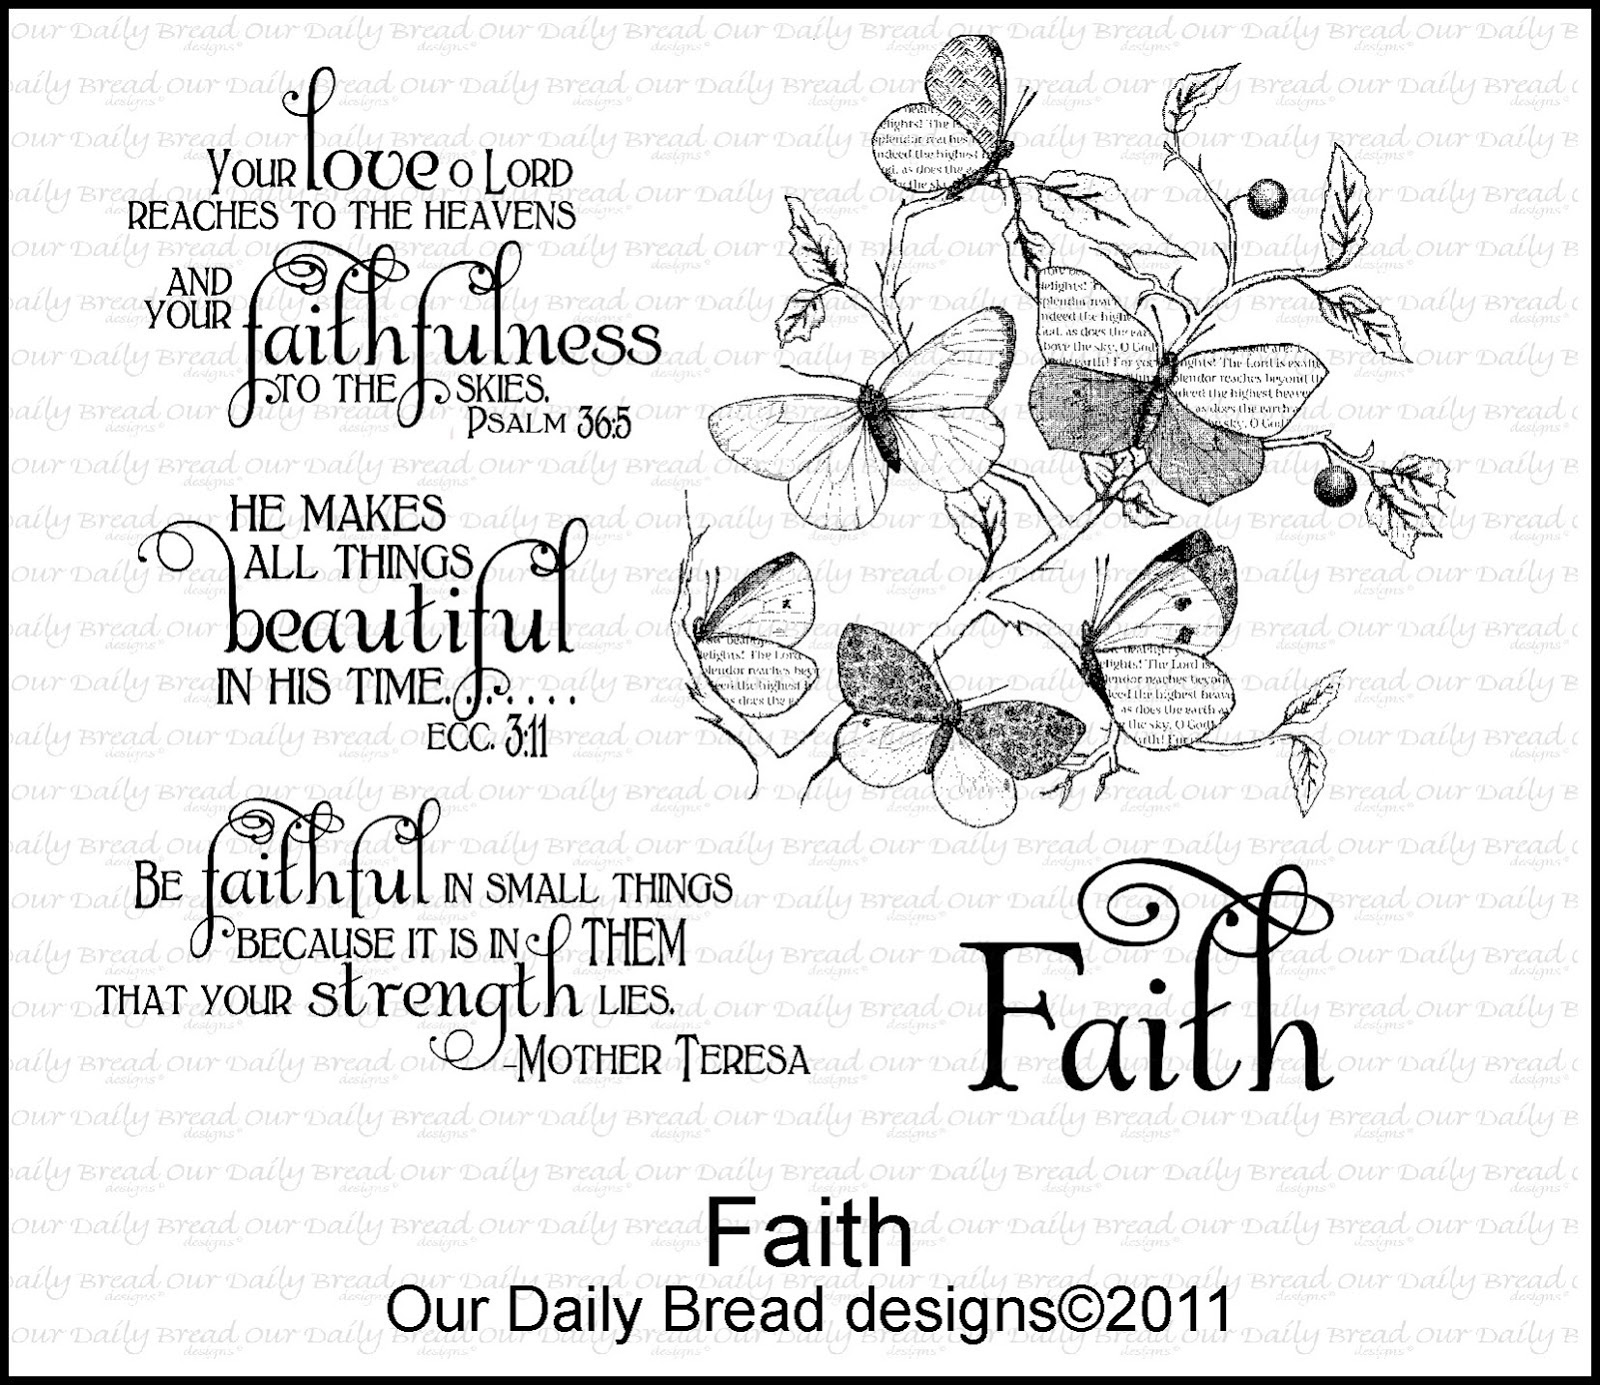 https://www.ourdailybreaddesigns.com/index.php/faith.html